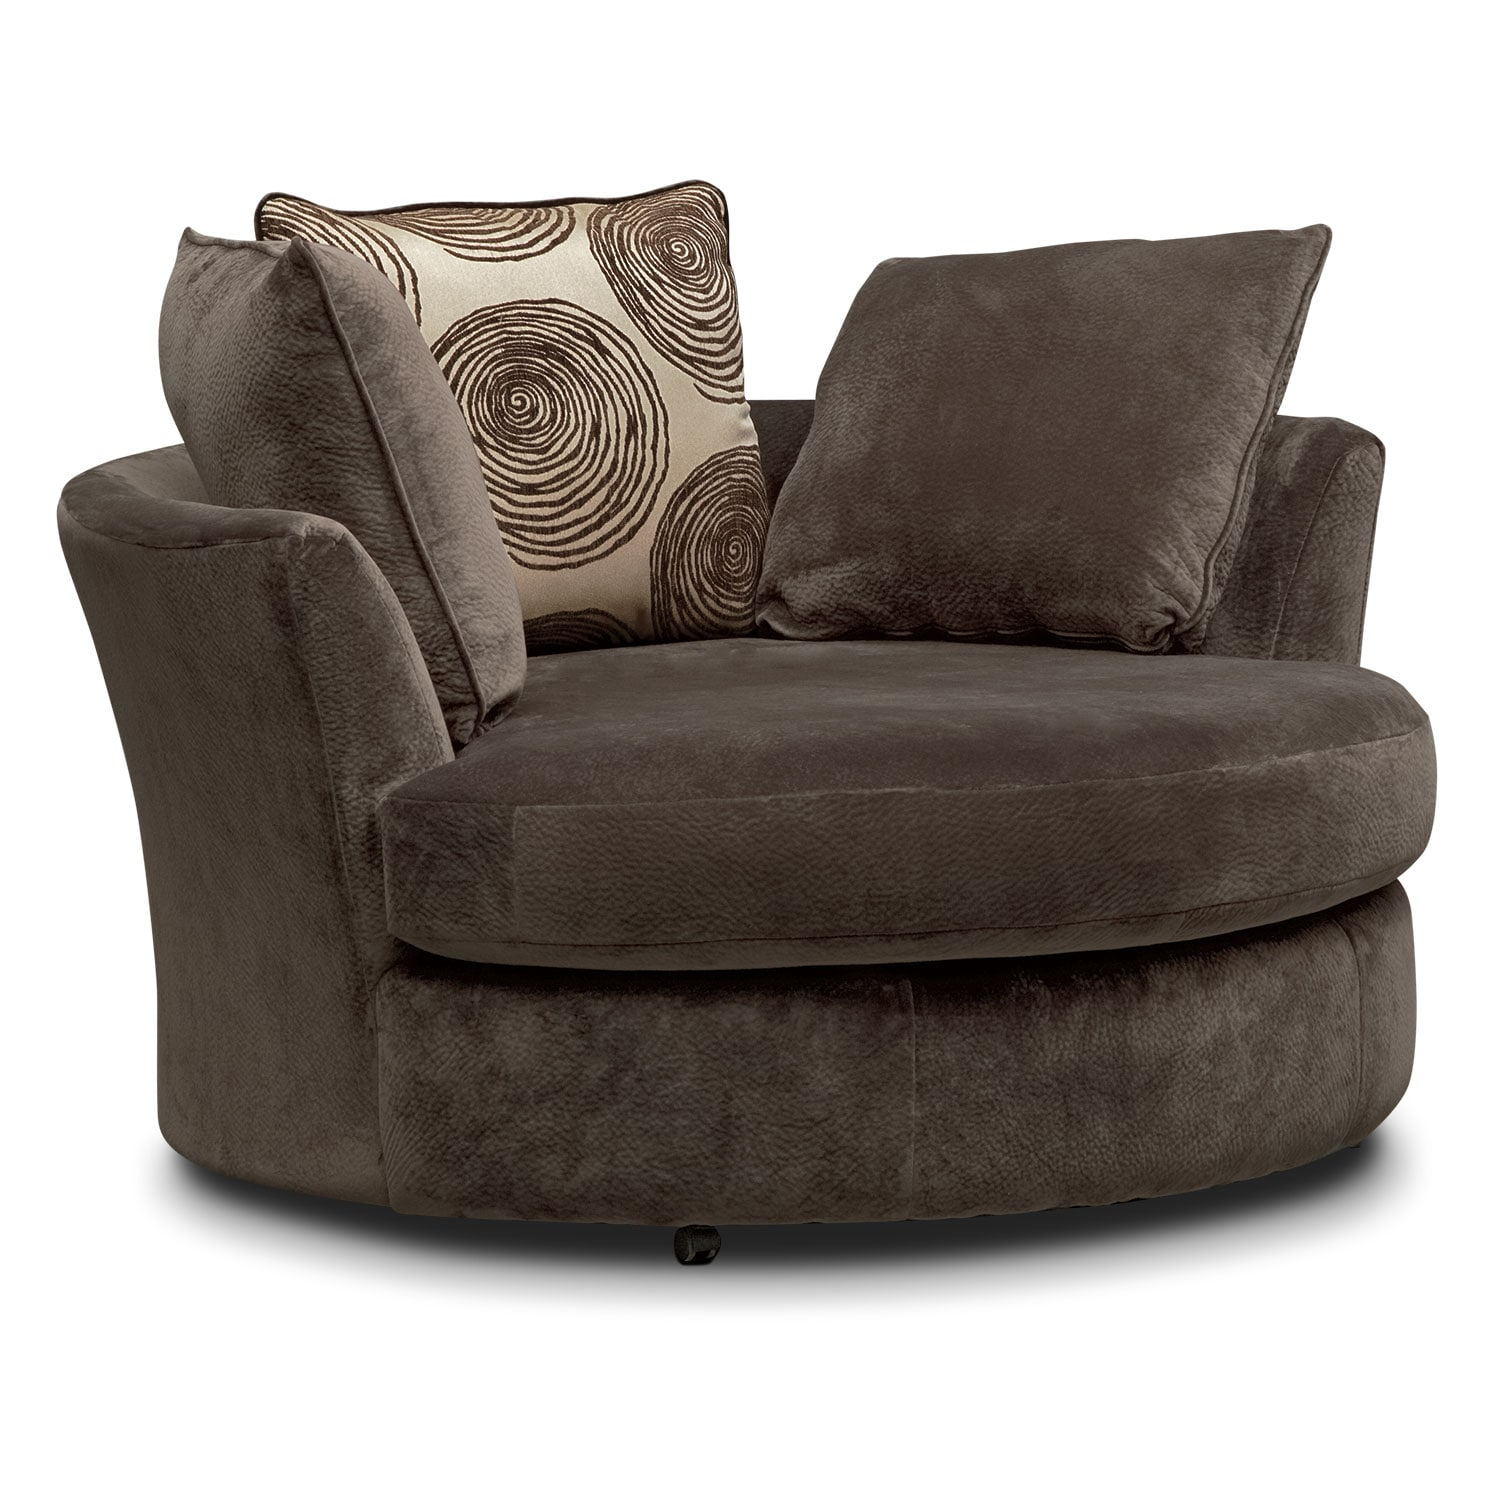 living room swivel chairs. Living Room Furniture  Cordelle Swivel Chair Chocolate Hover to zoom Value City and